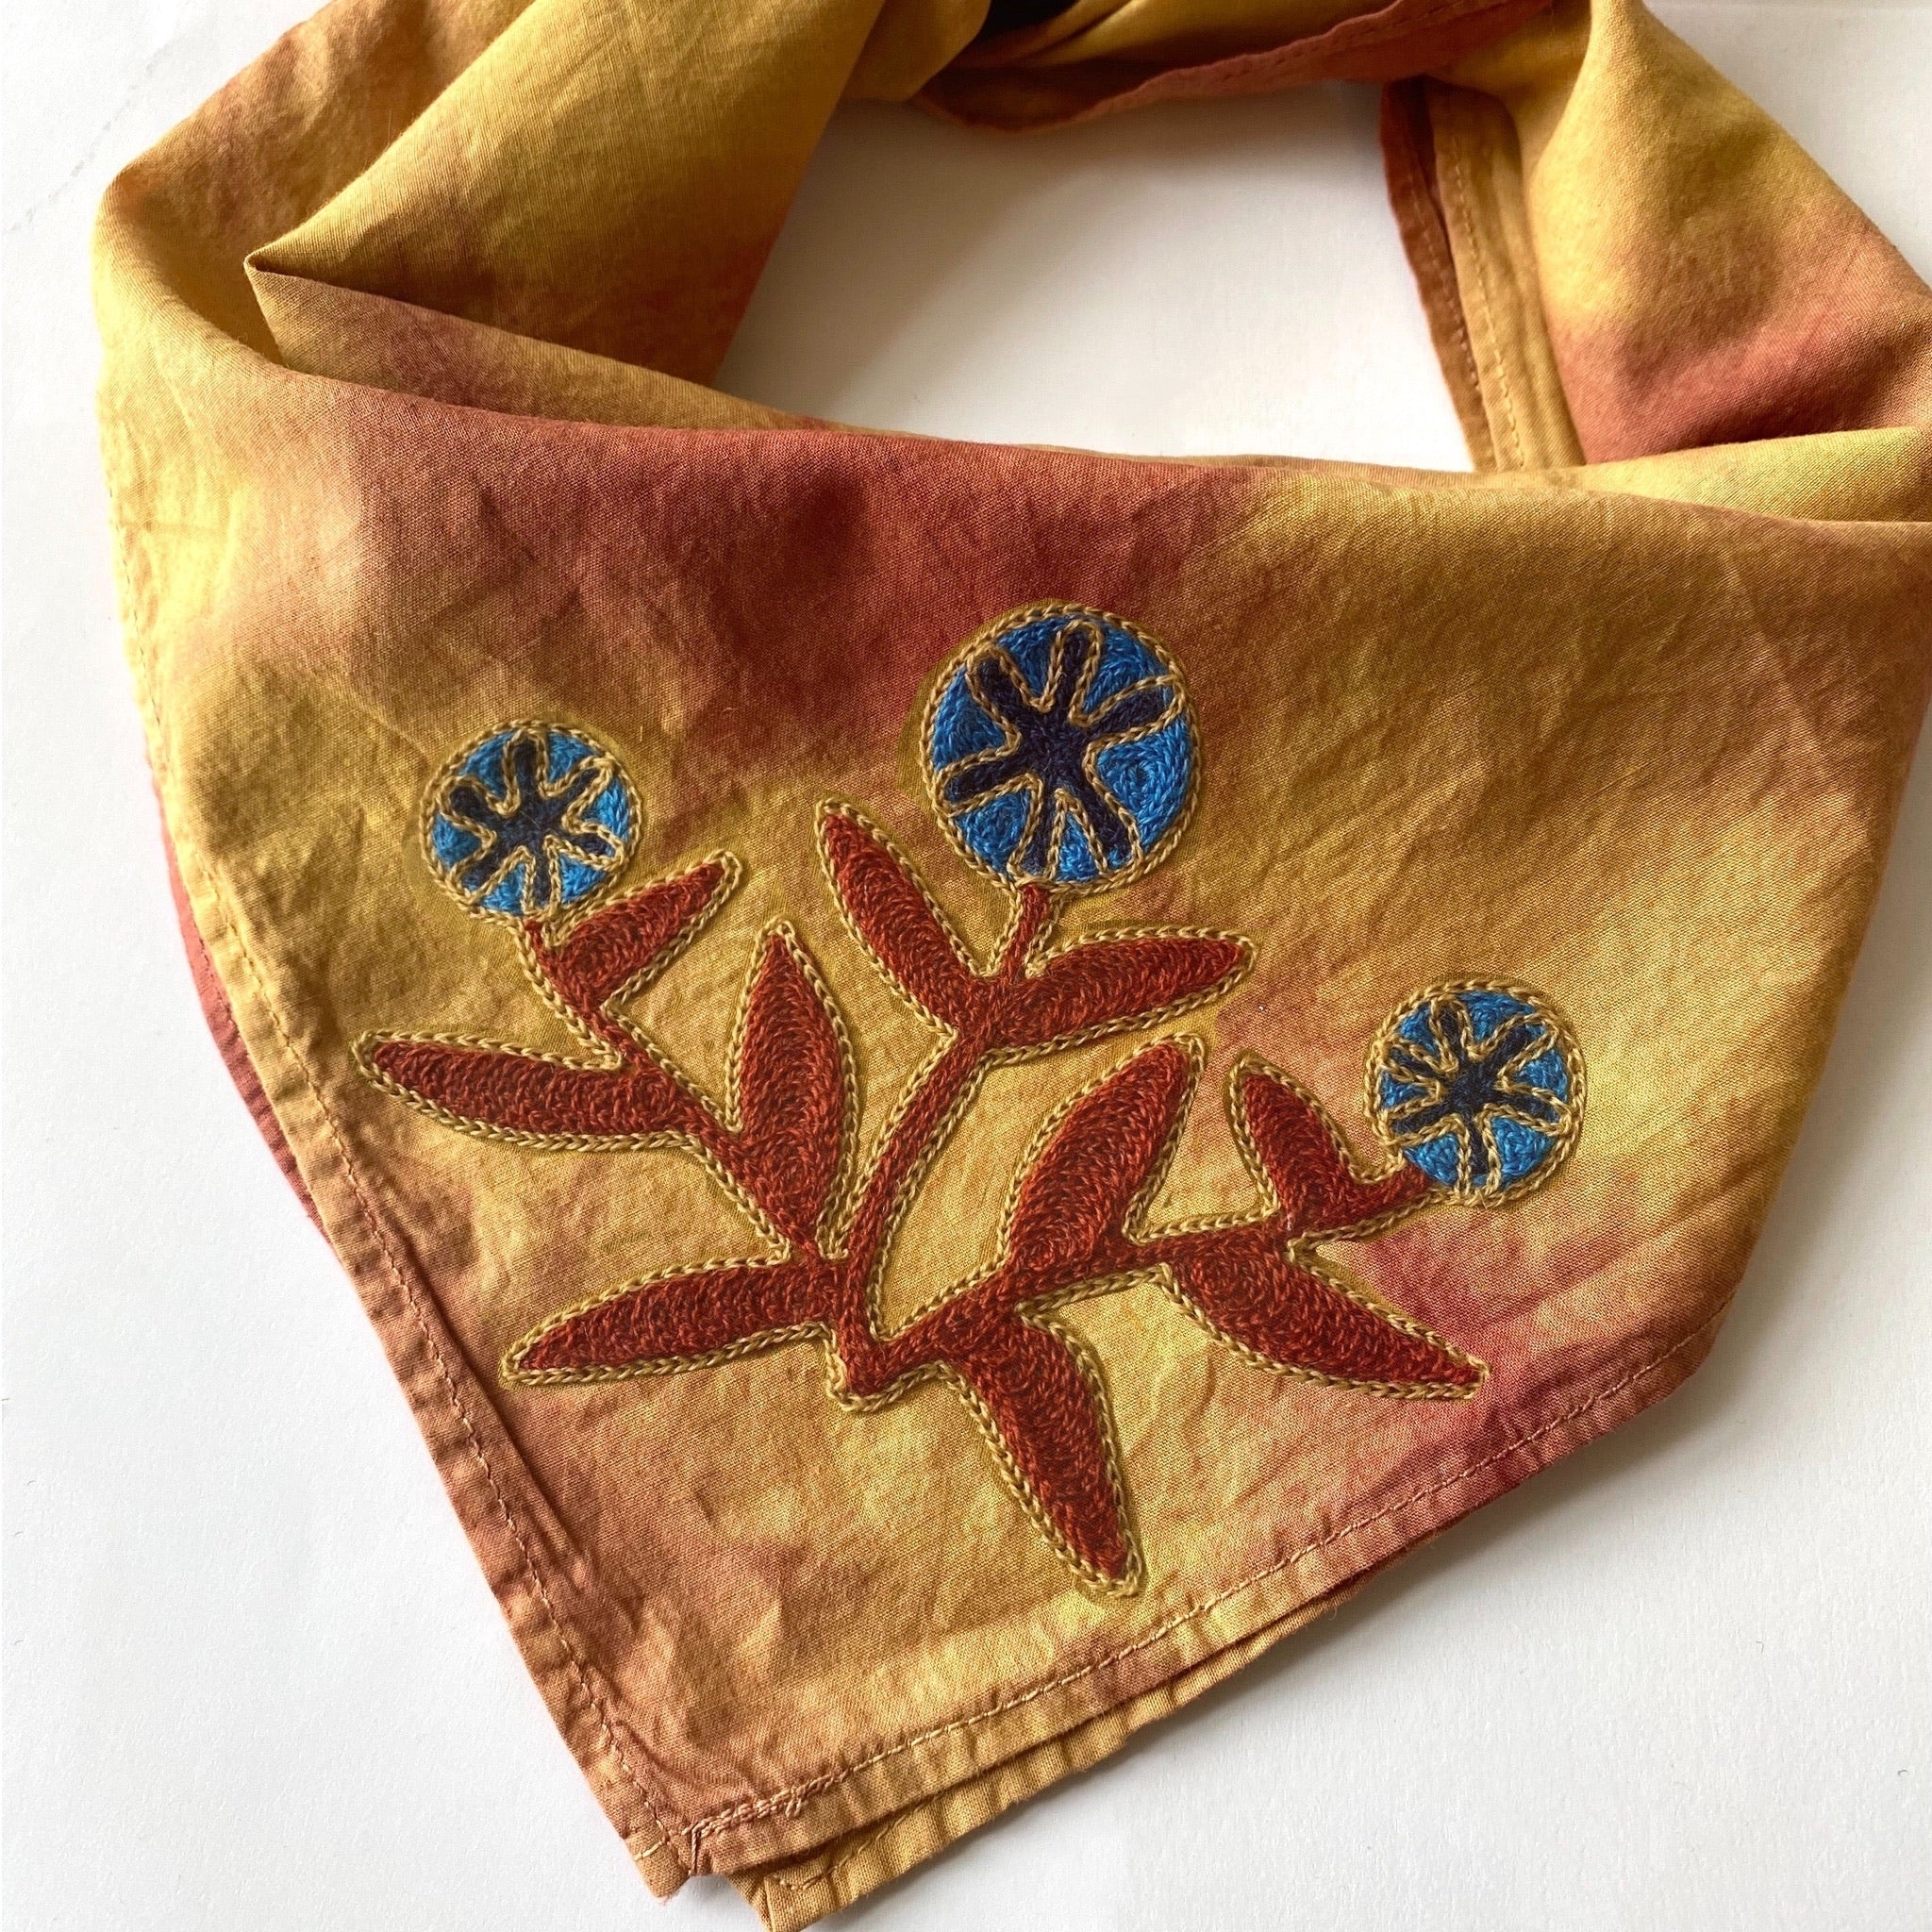 Naturally Dyed Embroidered Bandana-Blue Flowers